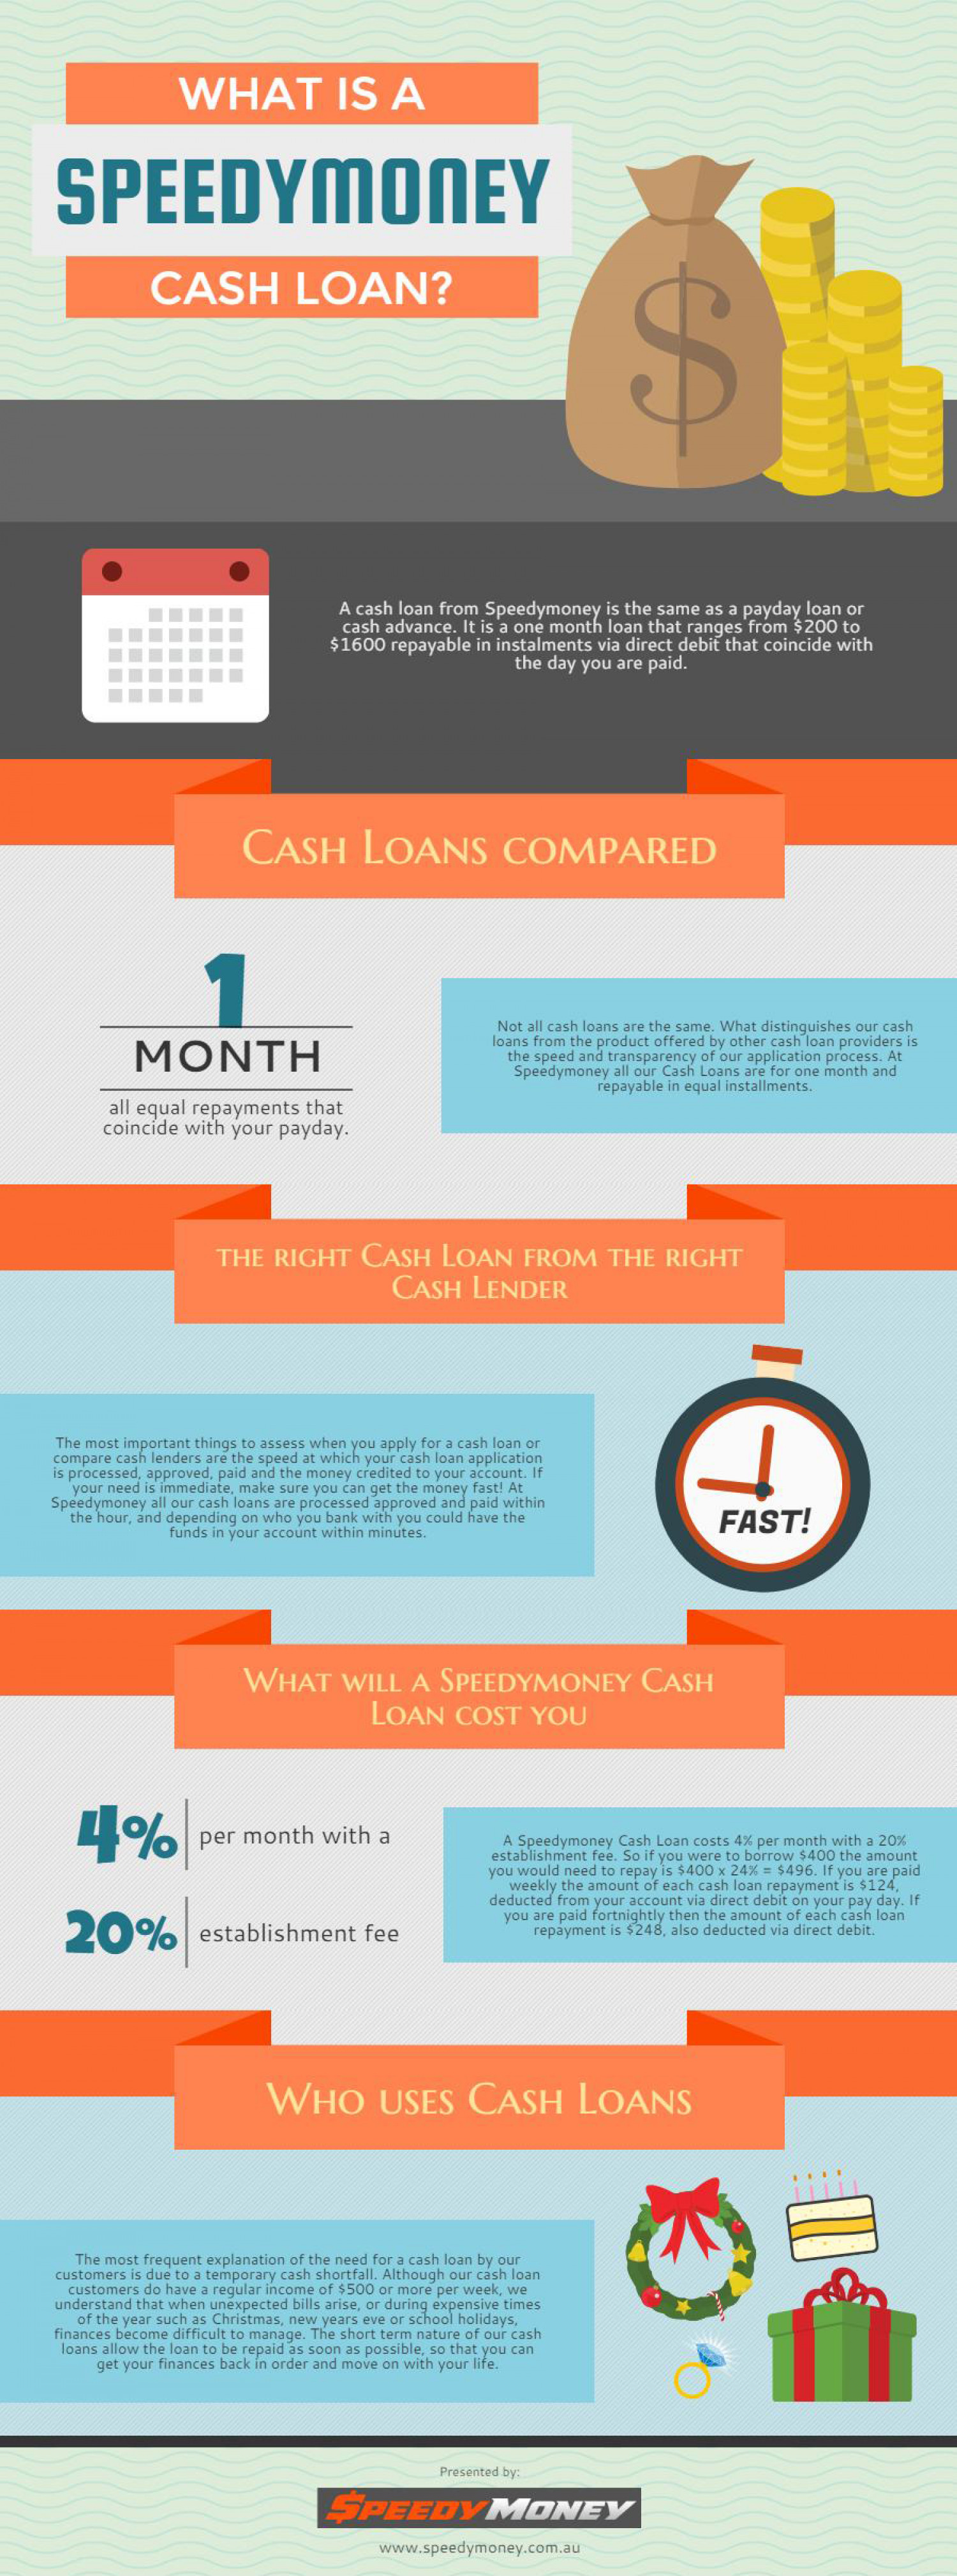 What is a Speedymoney Cash Loan- Infographic